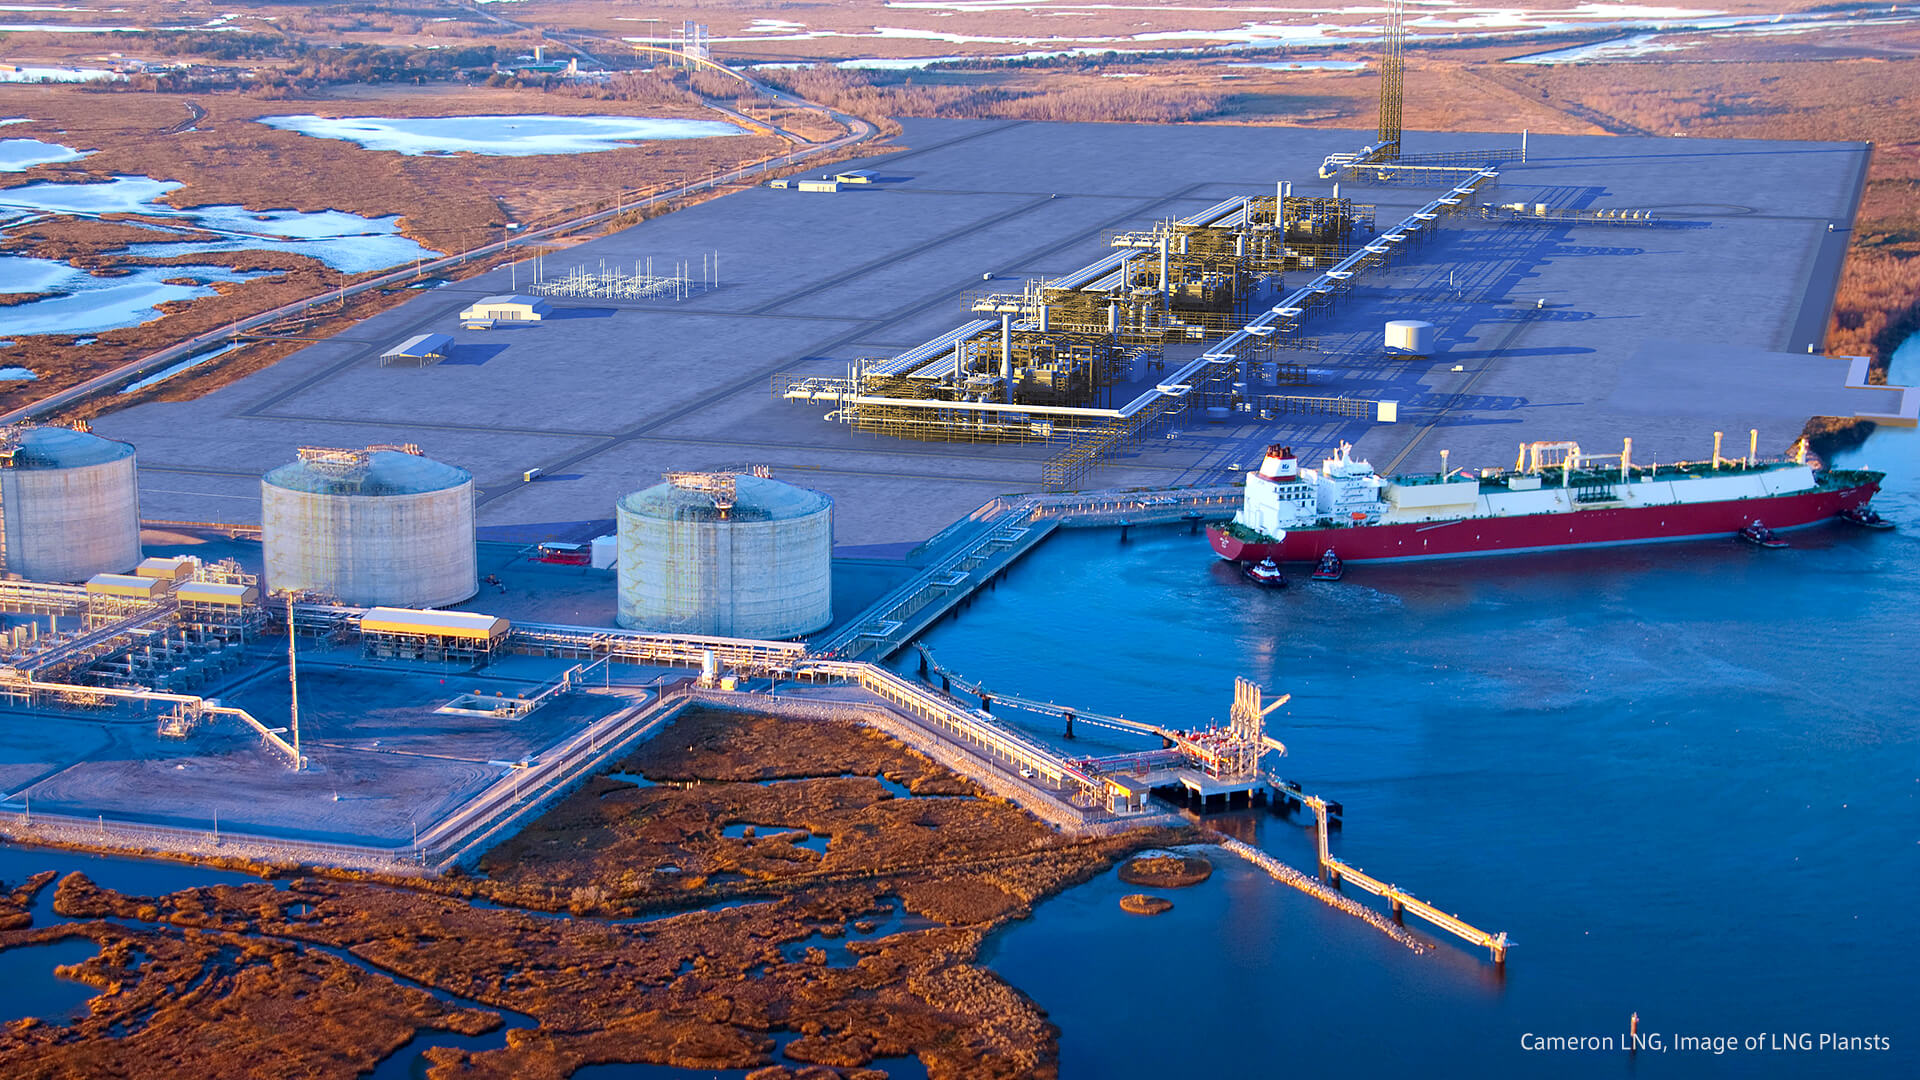 Deal signed between McDermott and Chiyoda for Cameron LNG.